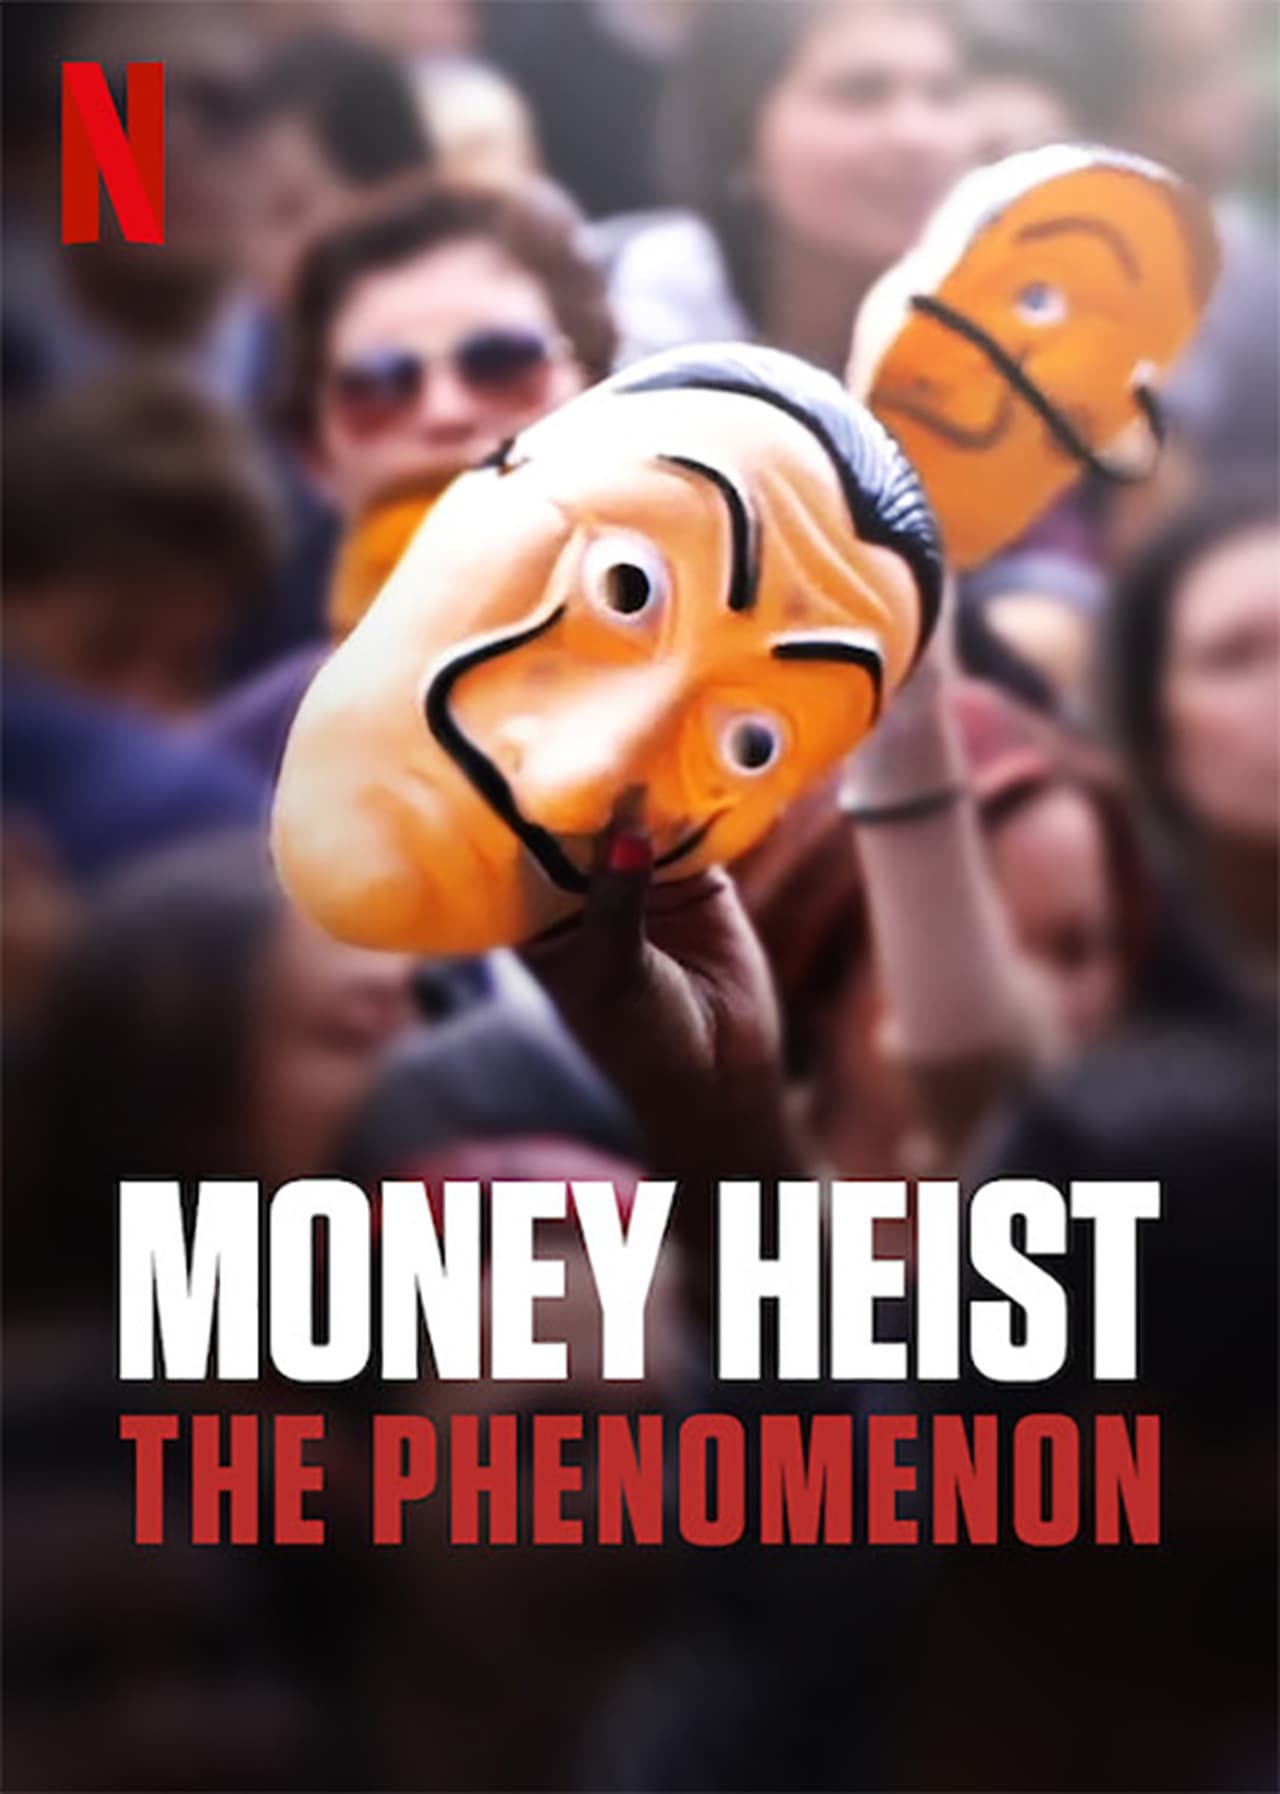 Darphane Soygunu: Fenomen – Money Heist: The Phenomenon (2020)